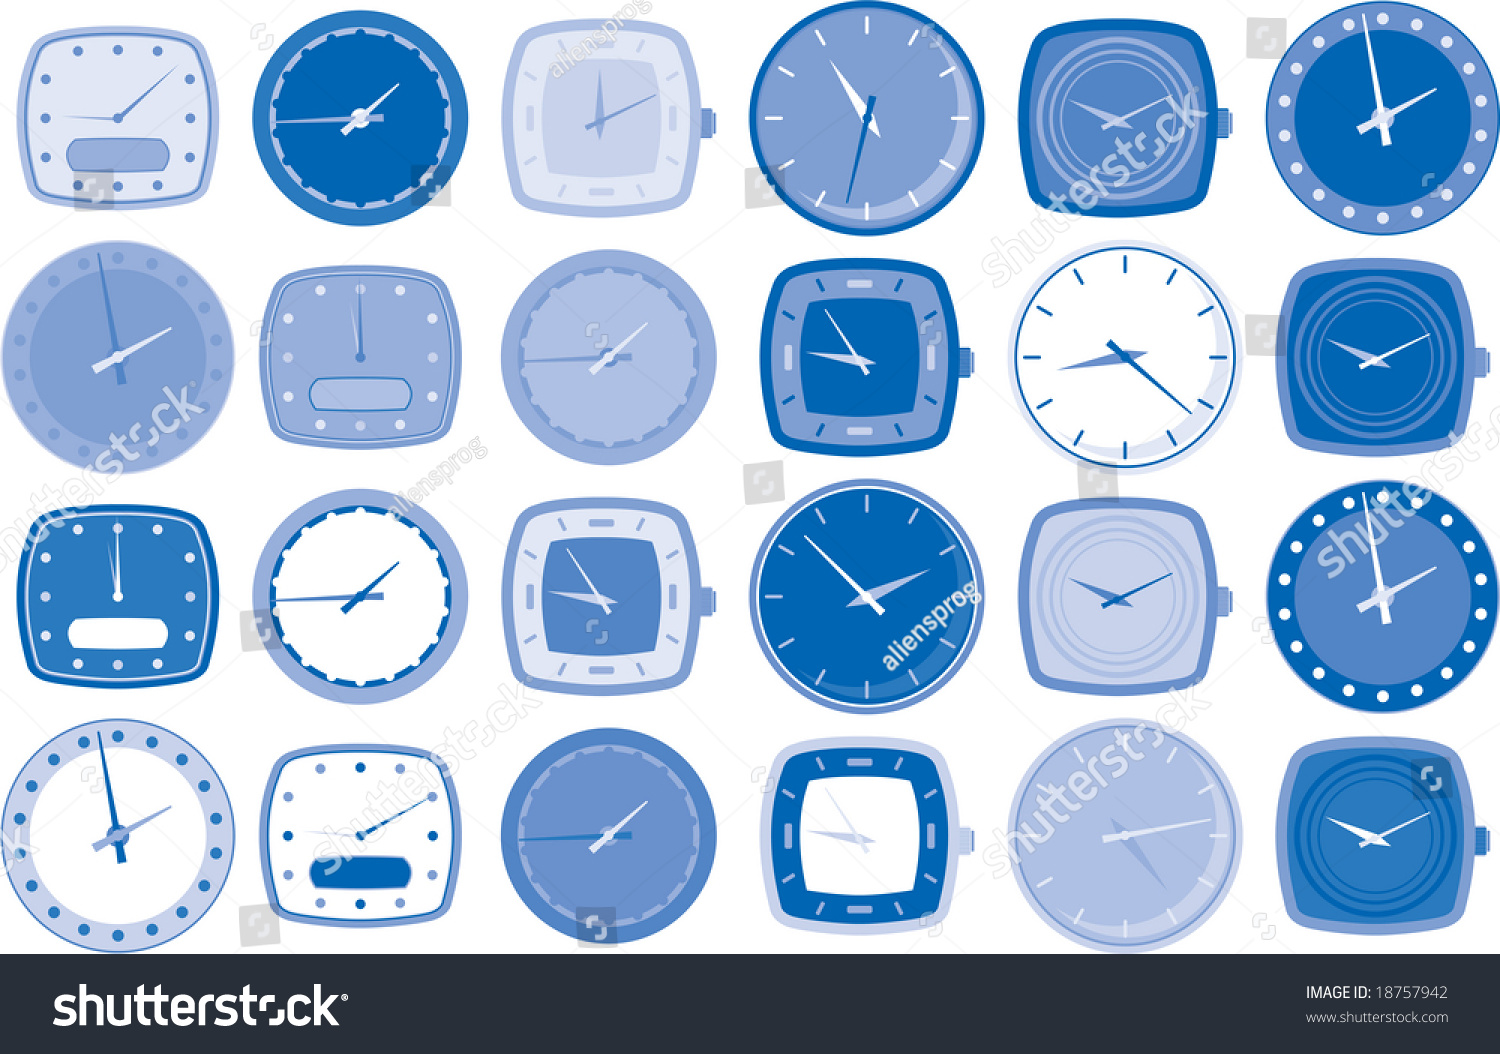 Various Watch Or Clock Face Vector Illustrations In